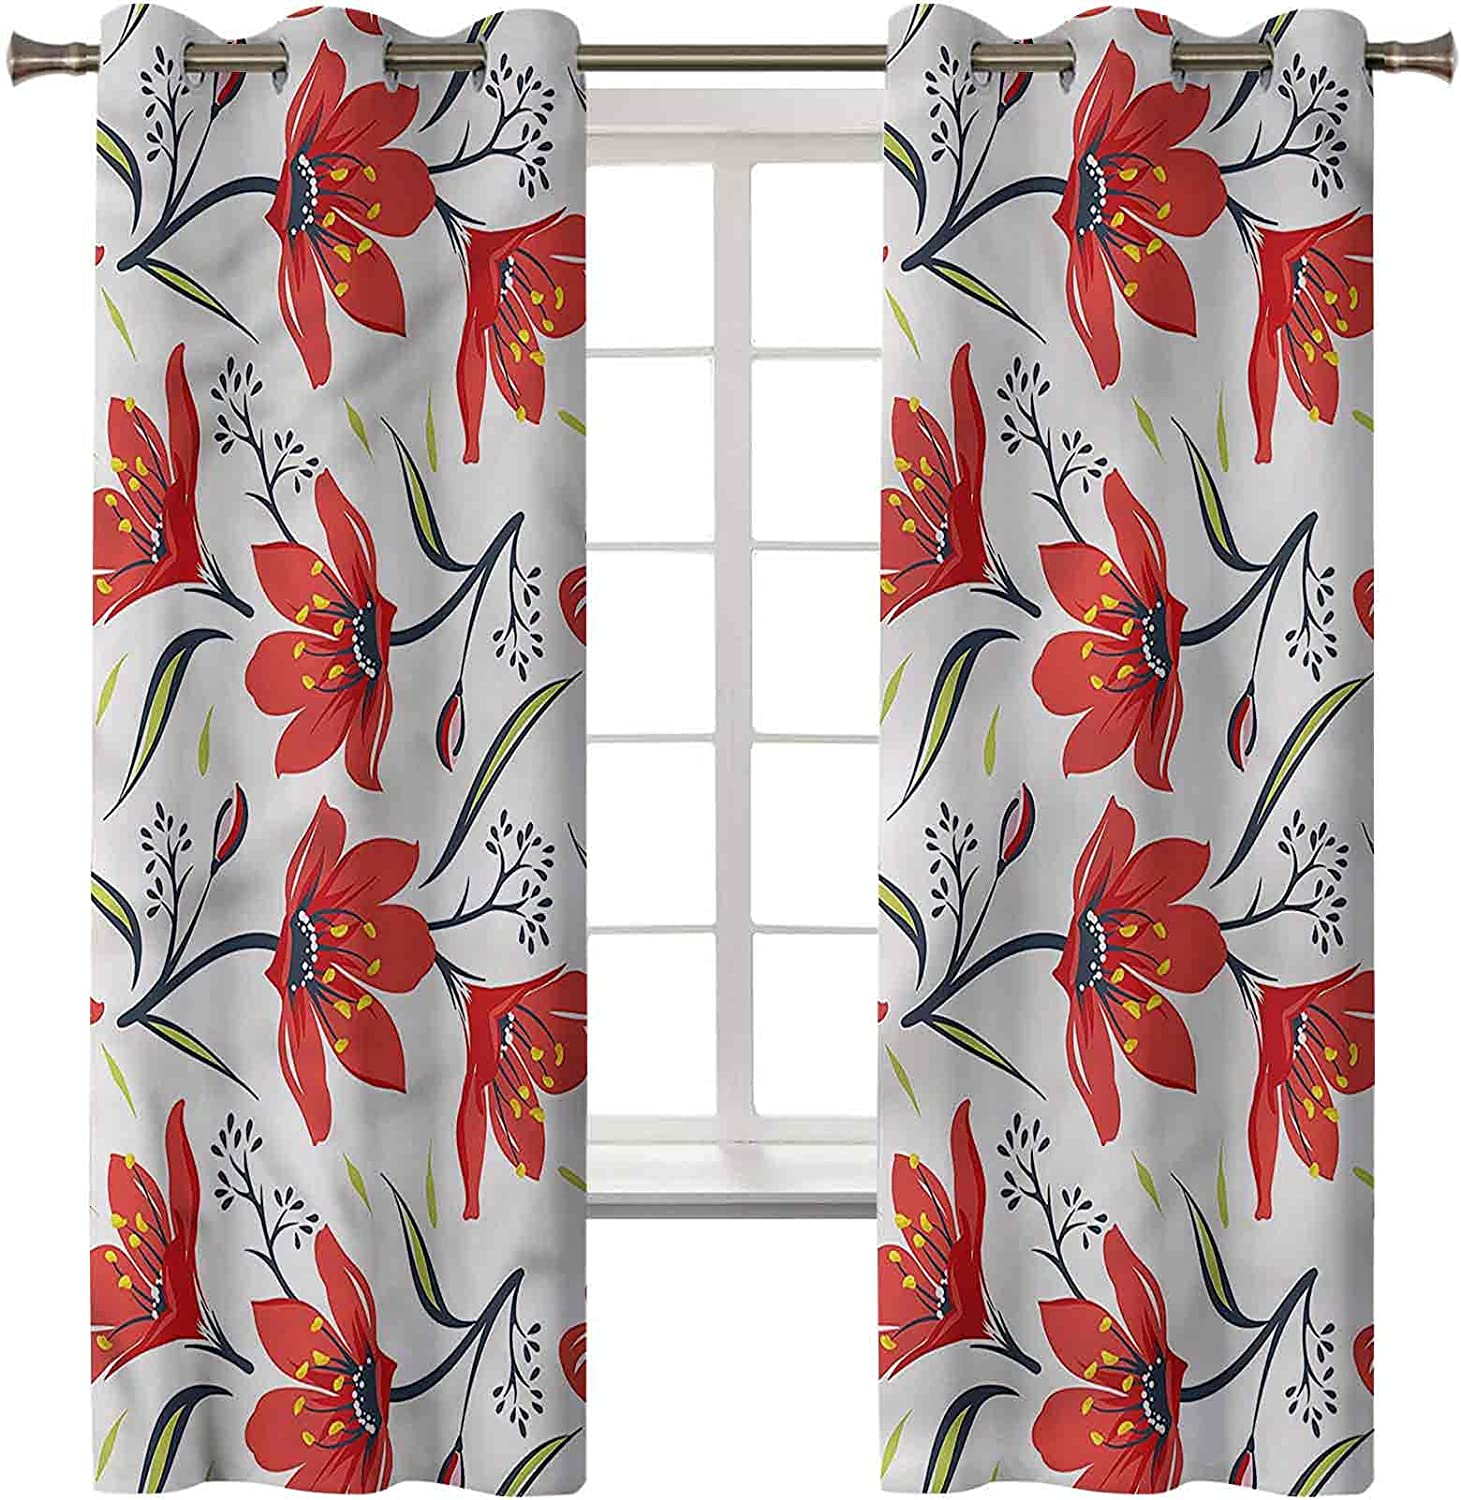 Blackout Curtains Light Easy-to-use Blocking Panel Floral Window Price reduction Draperies